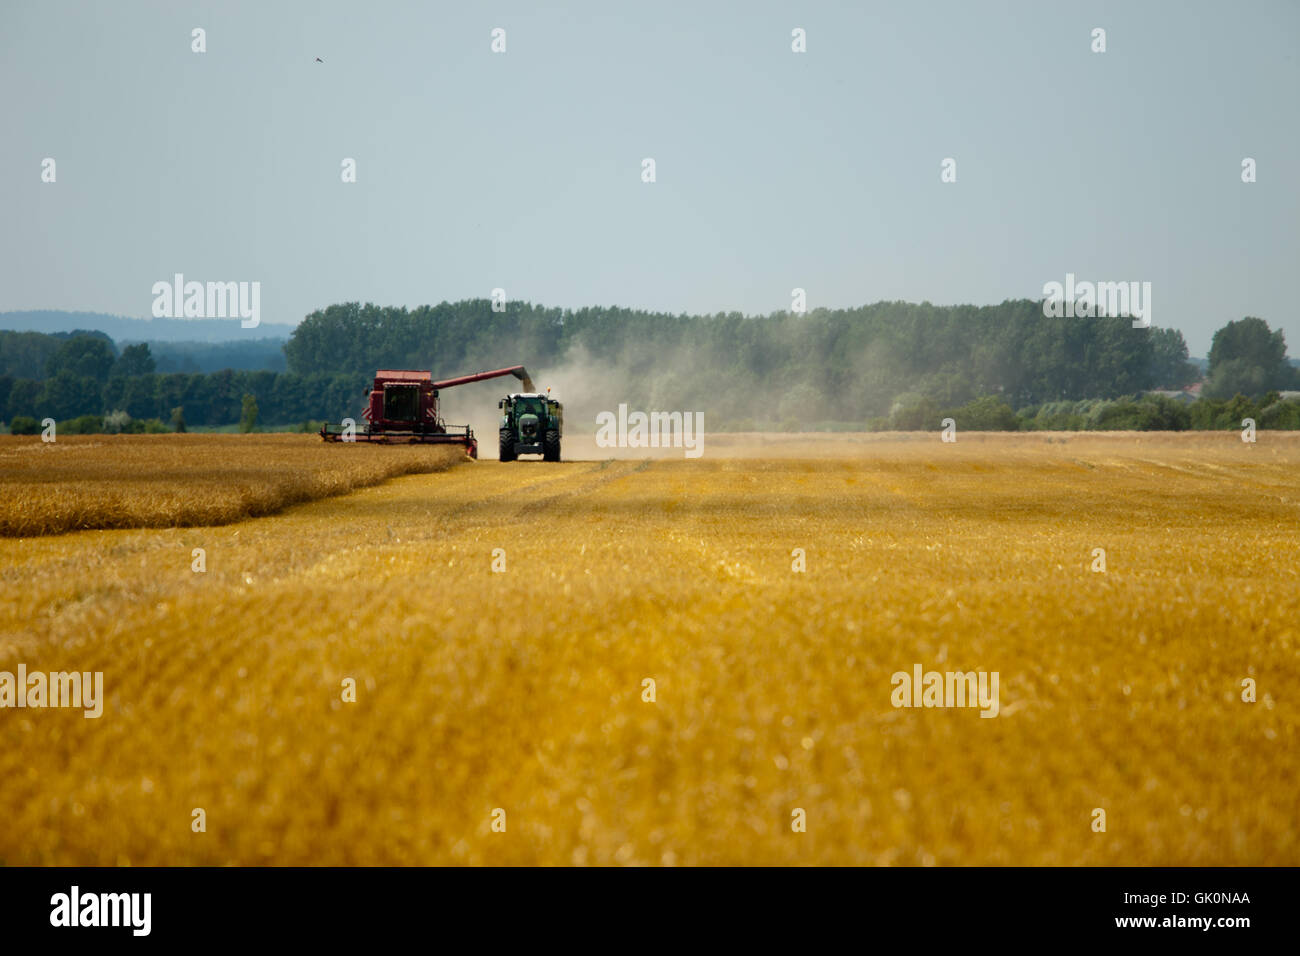 agriculture farming field Stock Photo